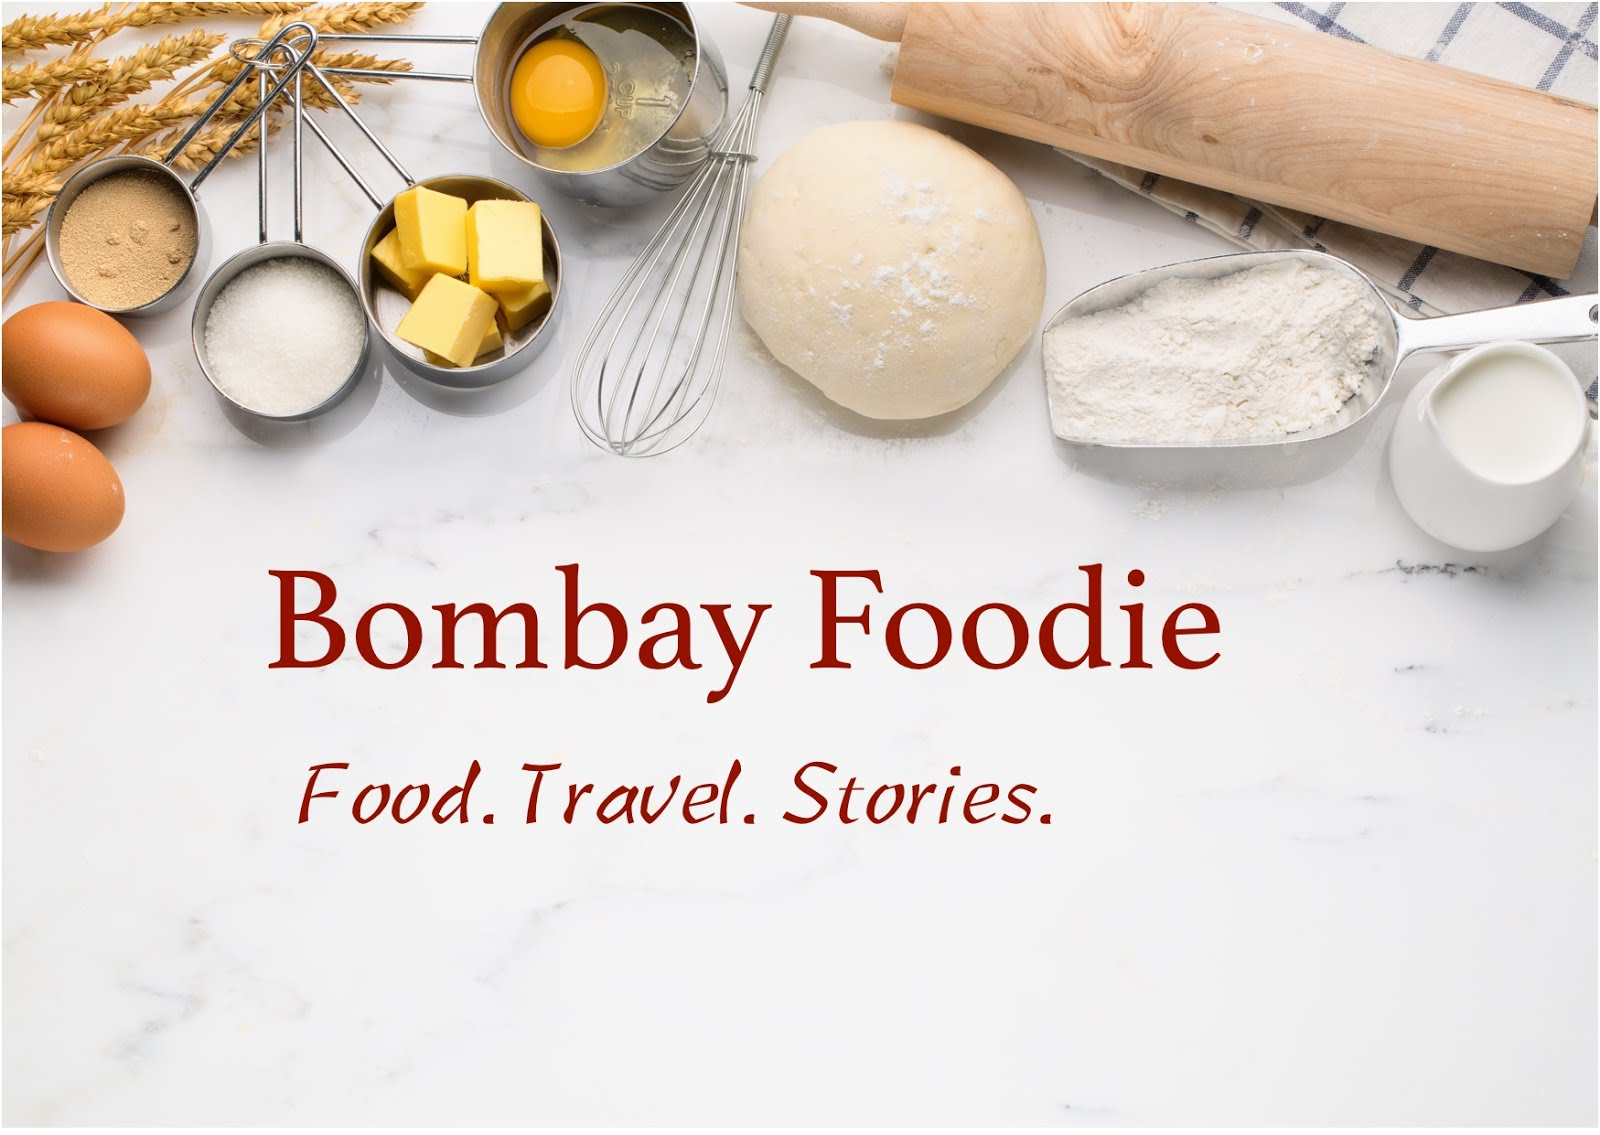 Bombay Foodie